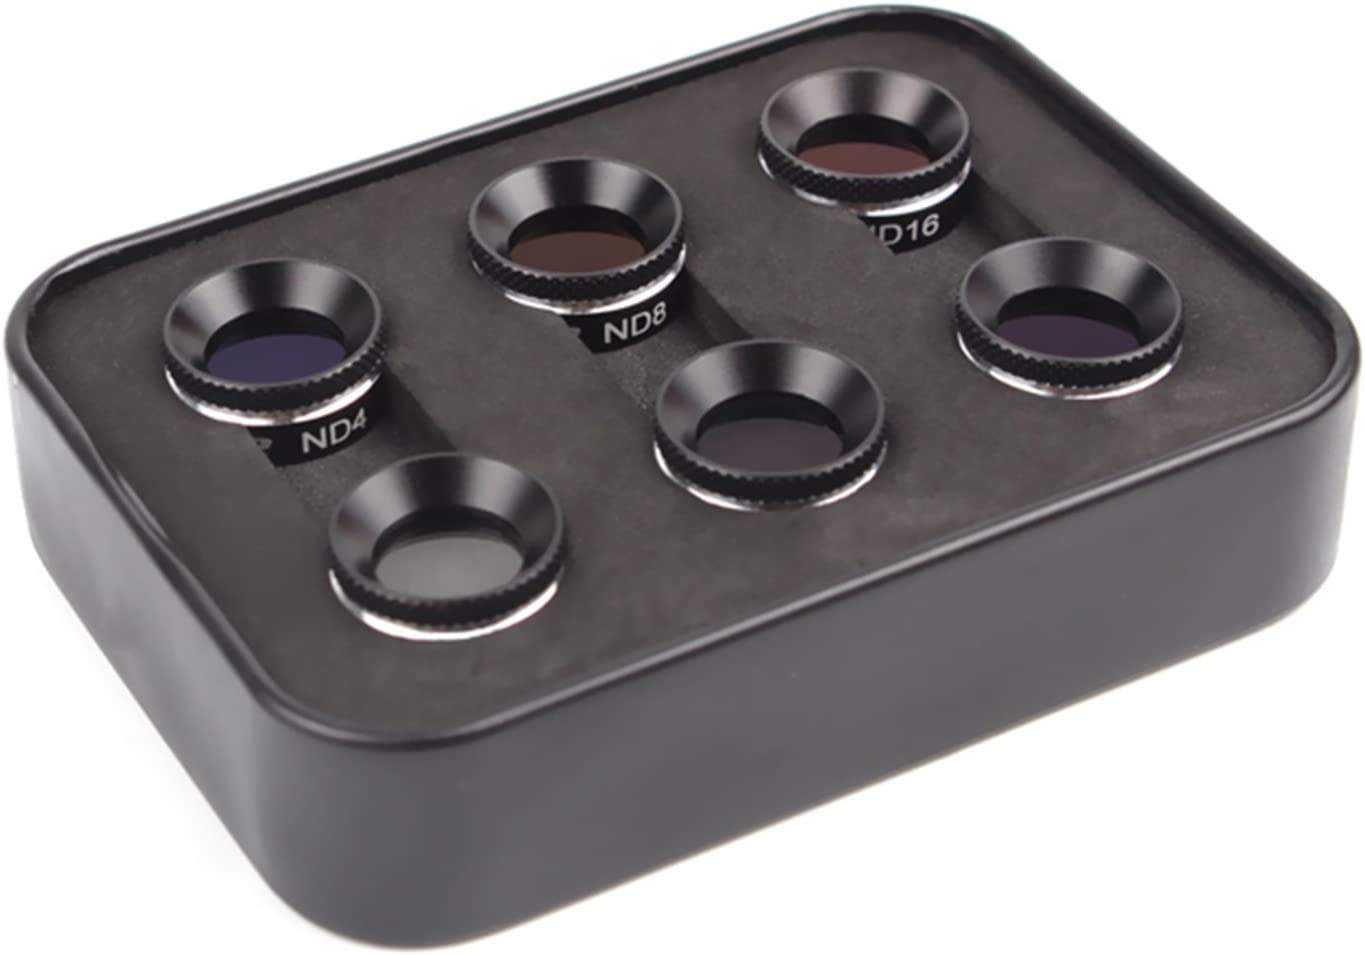 4 in 1 Combo: MCUV+CPL+ND4+ND8 Owoda ND4 ND8 ND16 CPL MCUV Camera Filter Lens Set for DJI Mavic AIR